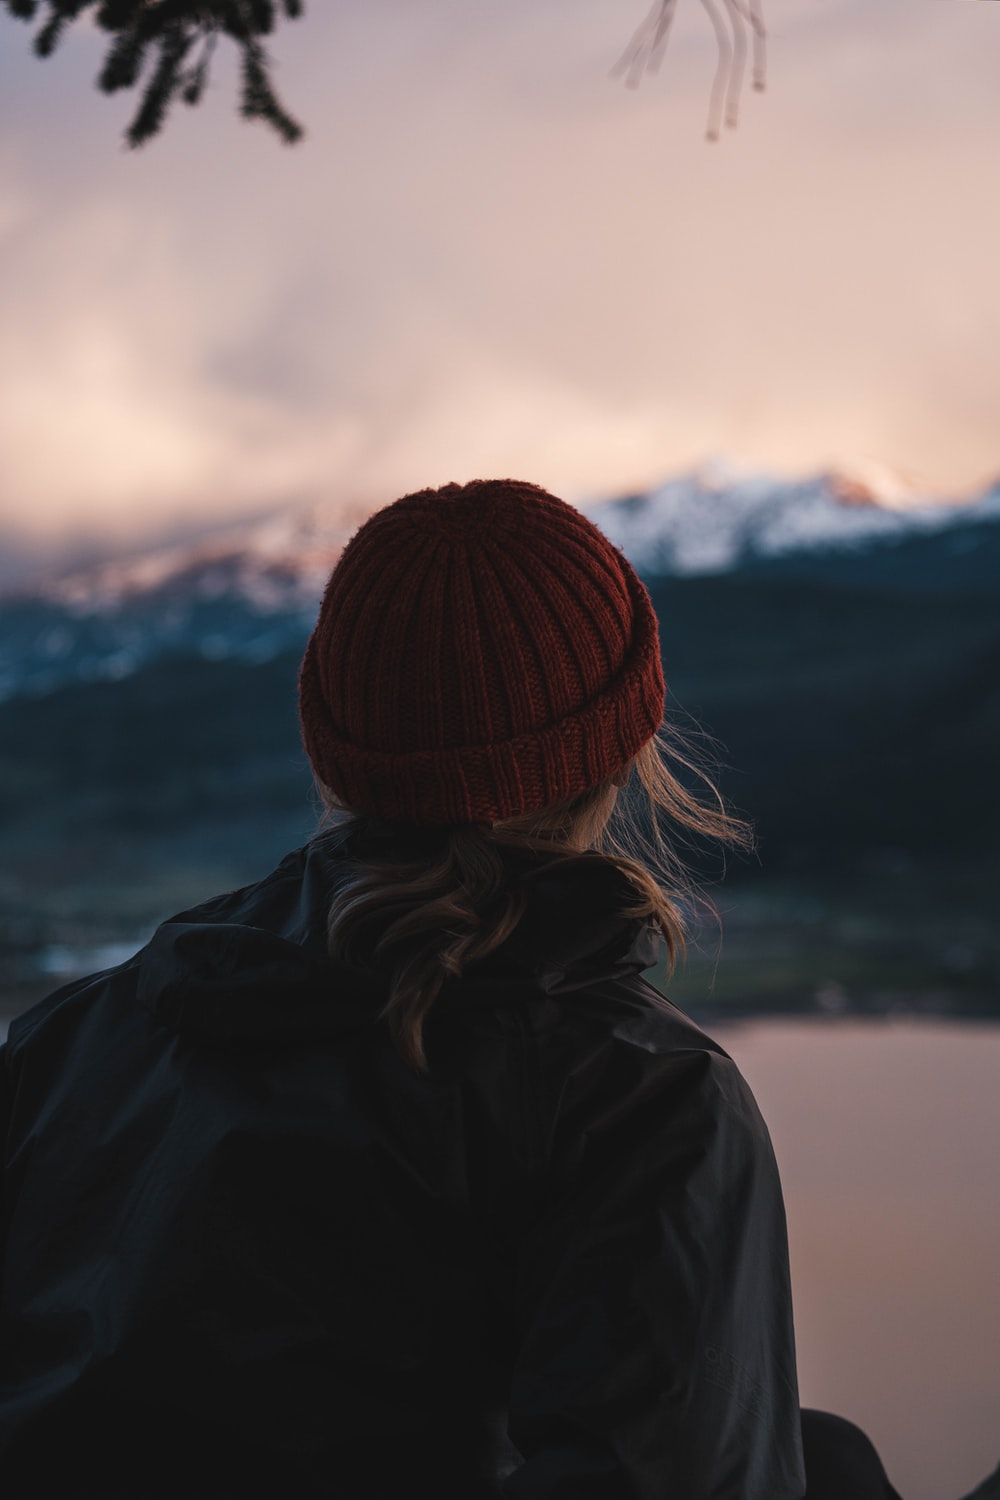 woman in black jacket and orange knit cap looking at the mountains during daytime